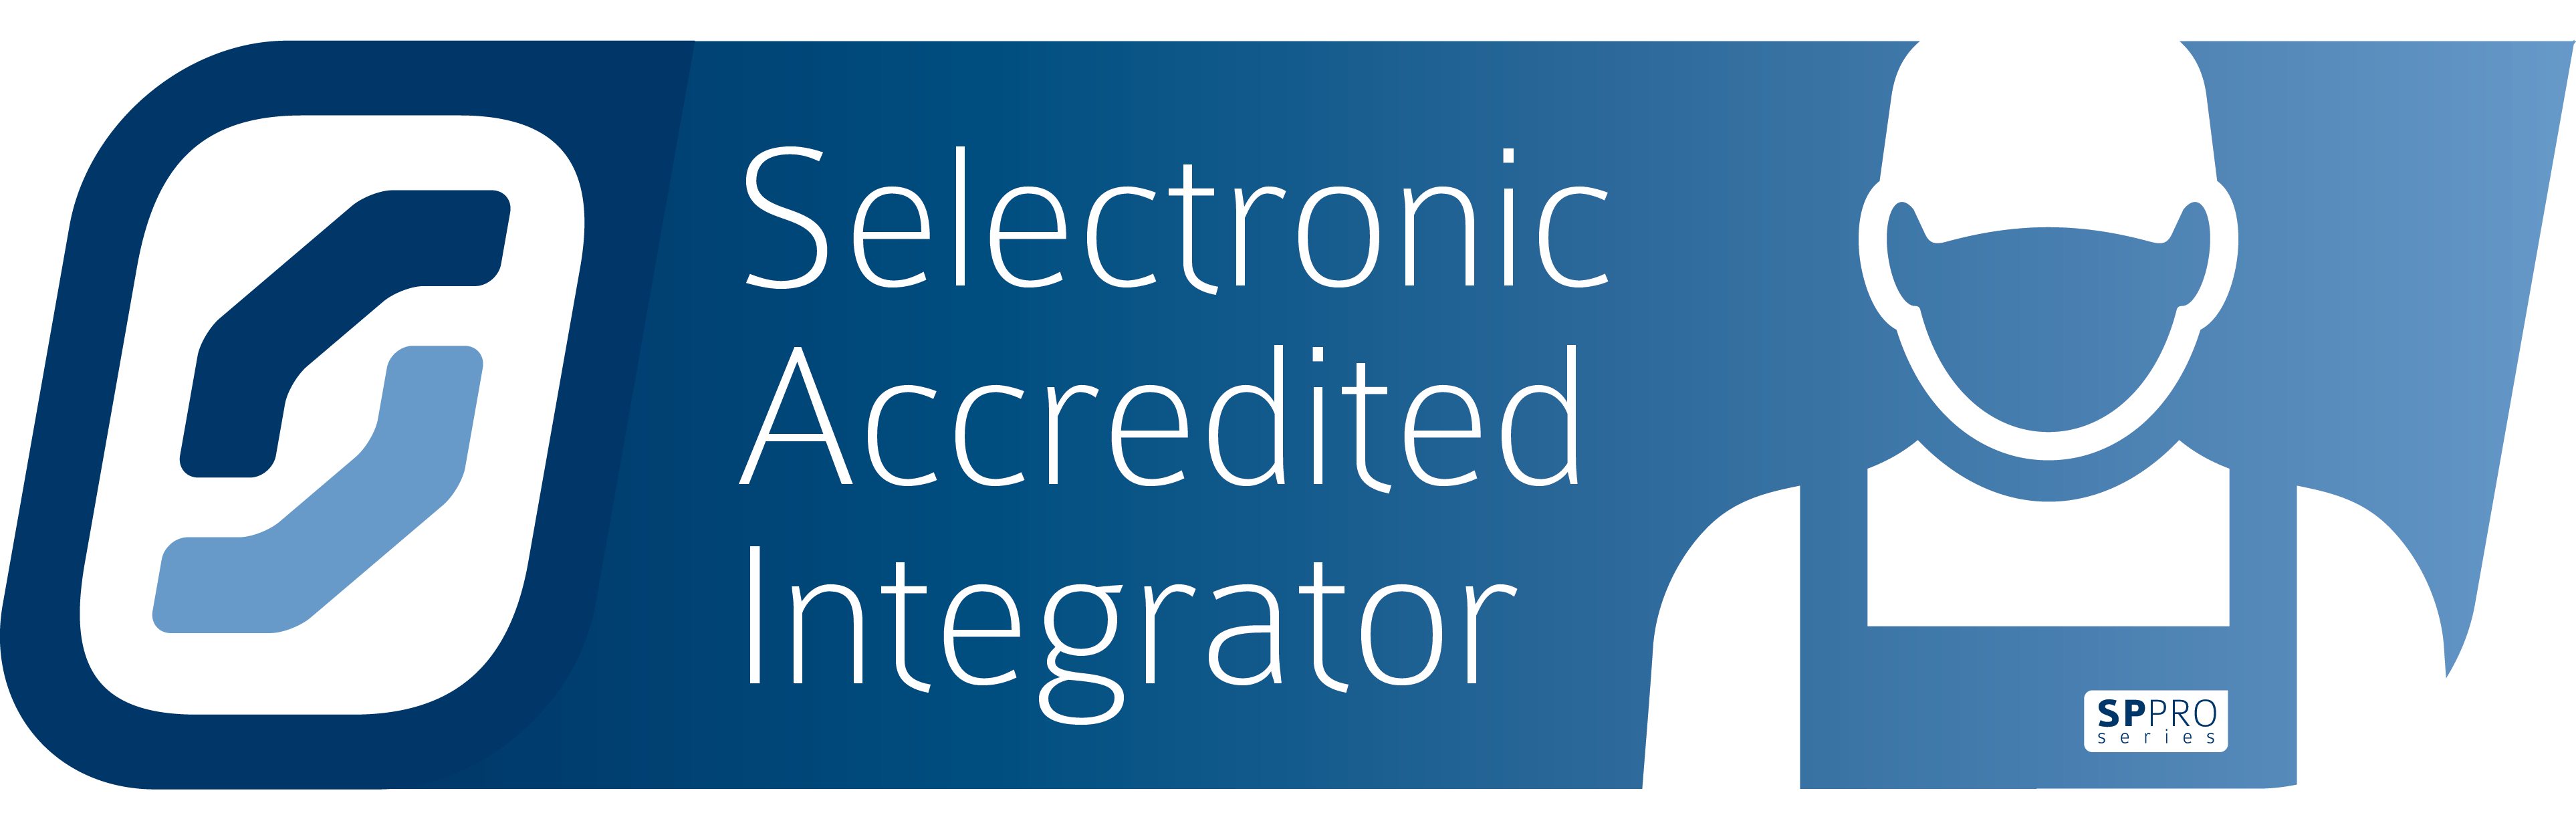 Selectronic-Accredited-Integrator-logo.png